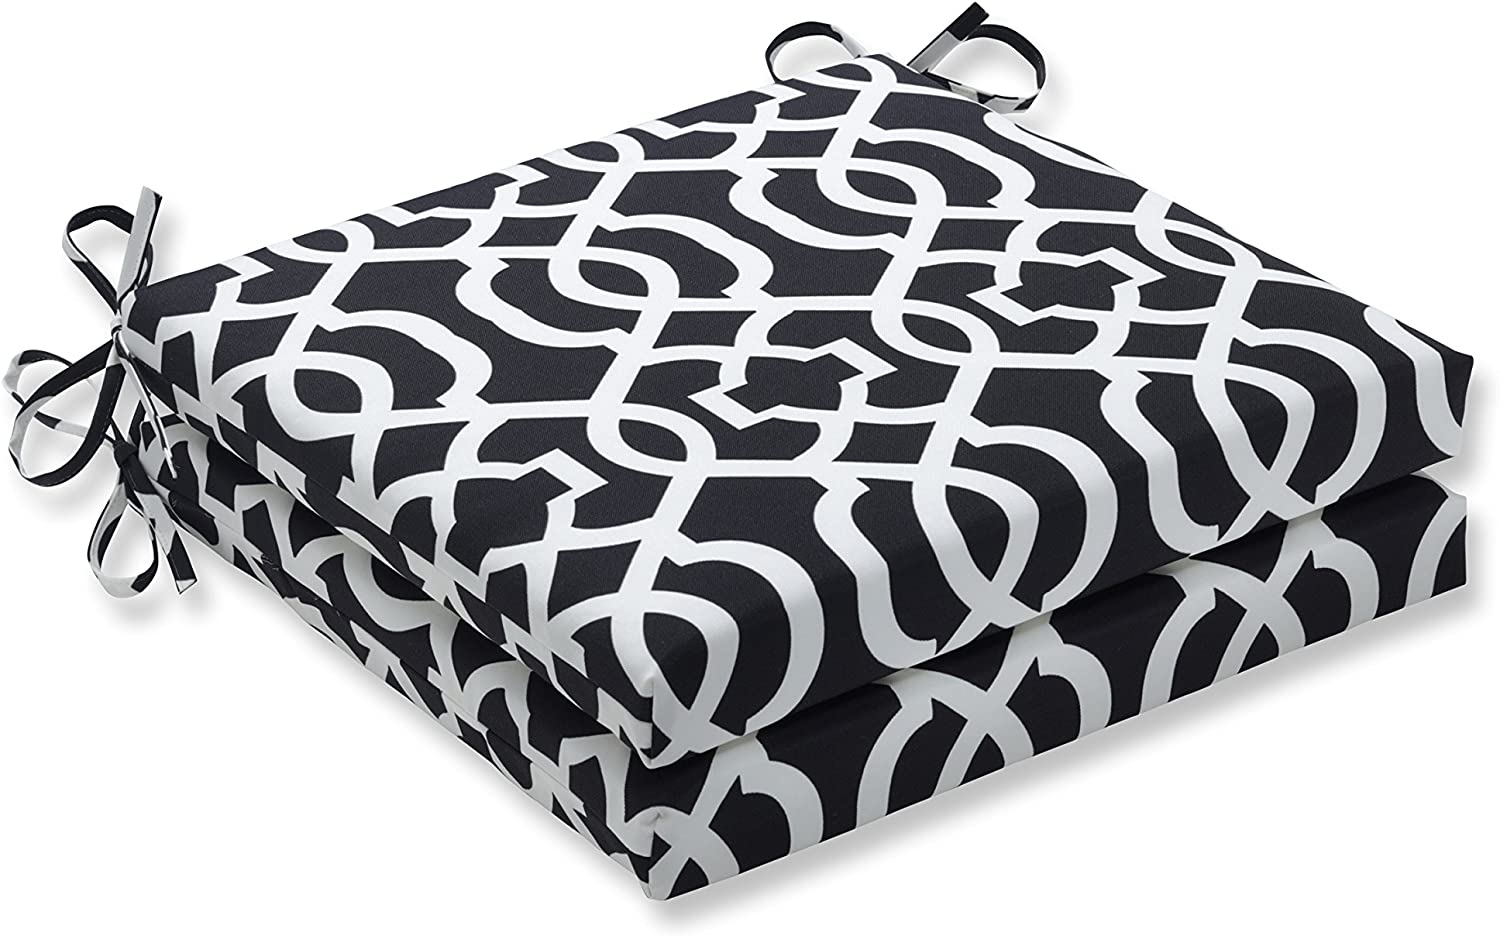 Pillow Perfect Outdoor New Geo Squared Corners Seat Cushion, Black White, Set of 2, Black, 20 in. L X 20 in. W X 3 in. D